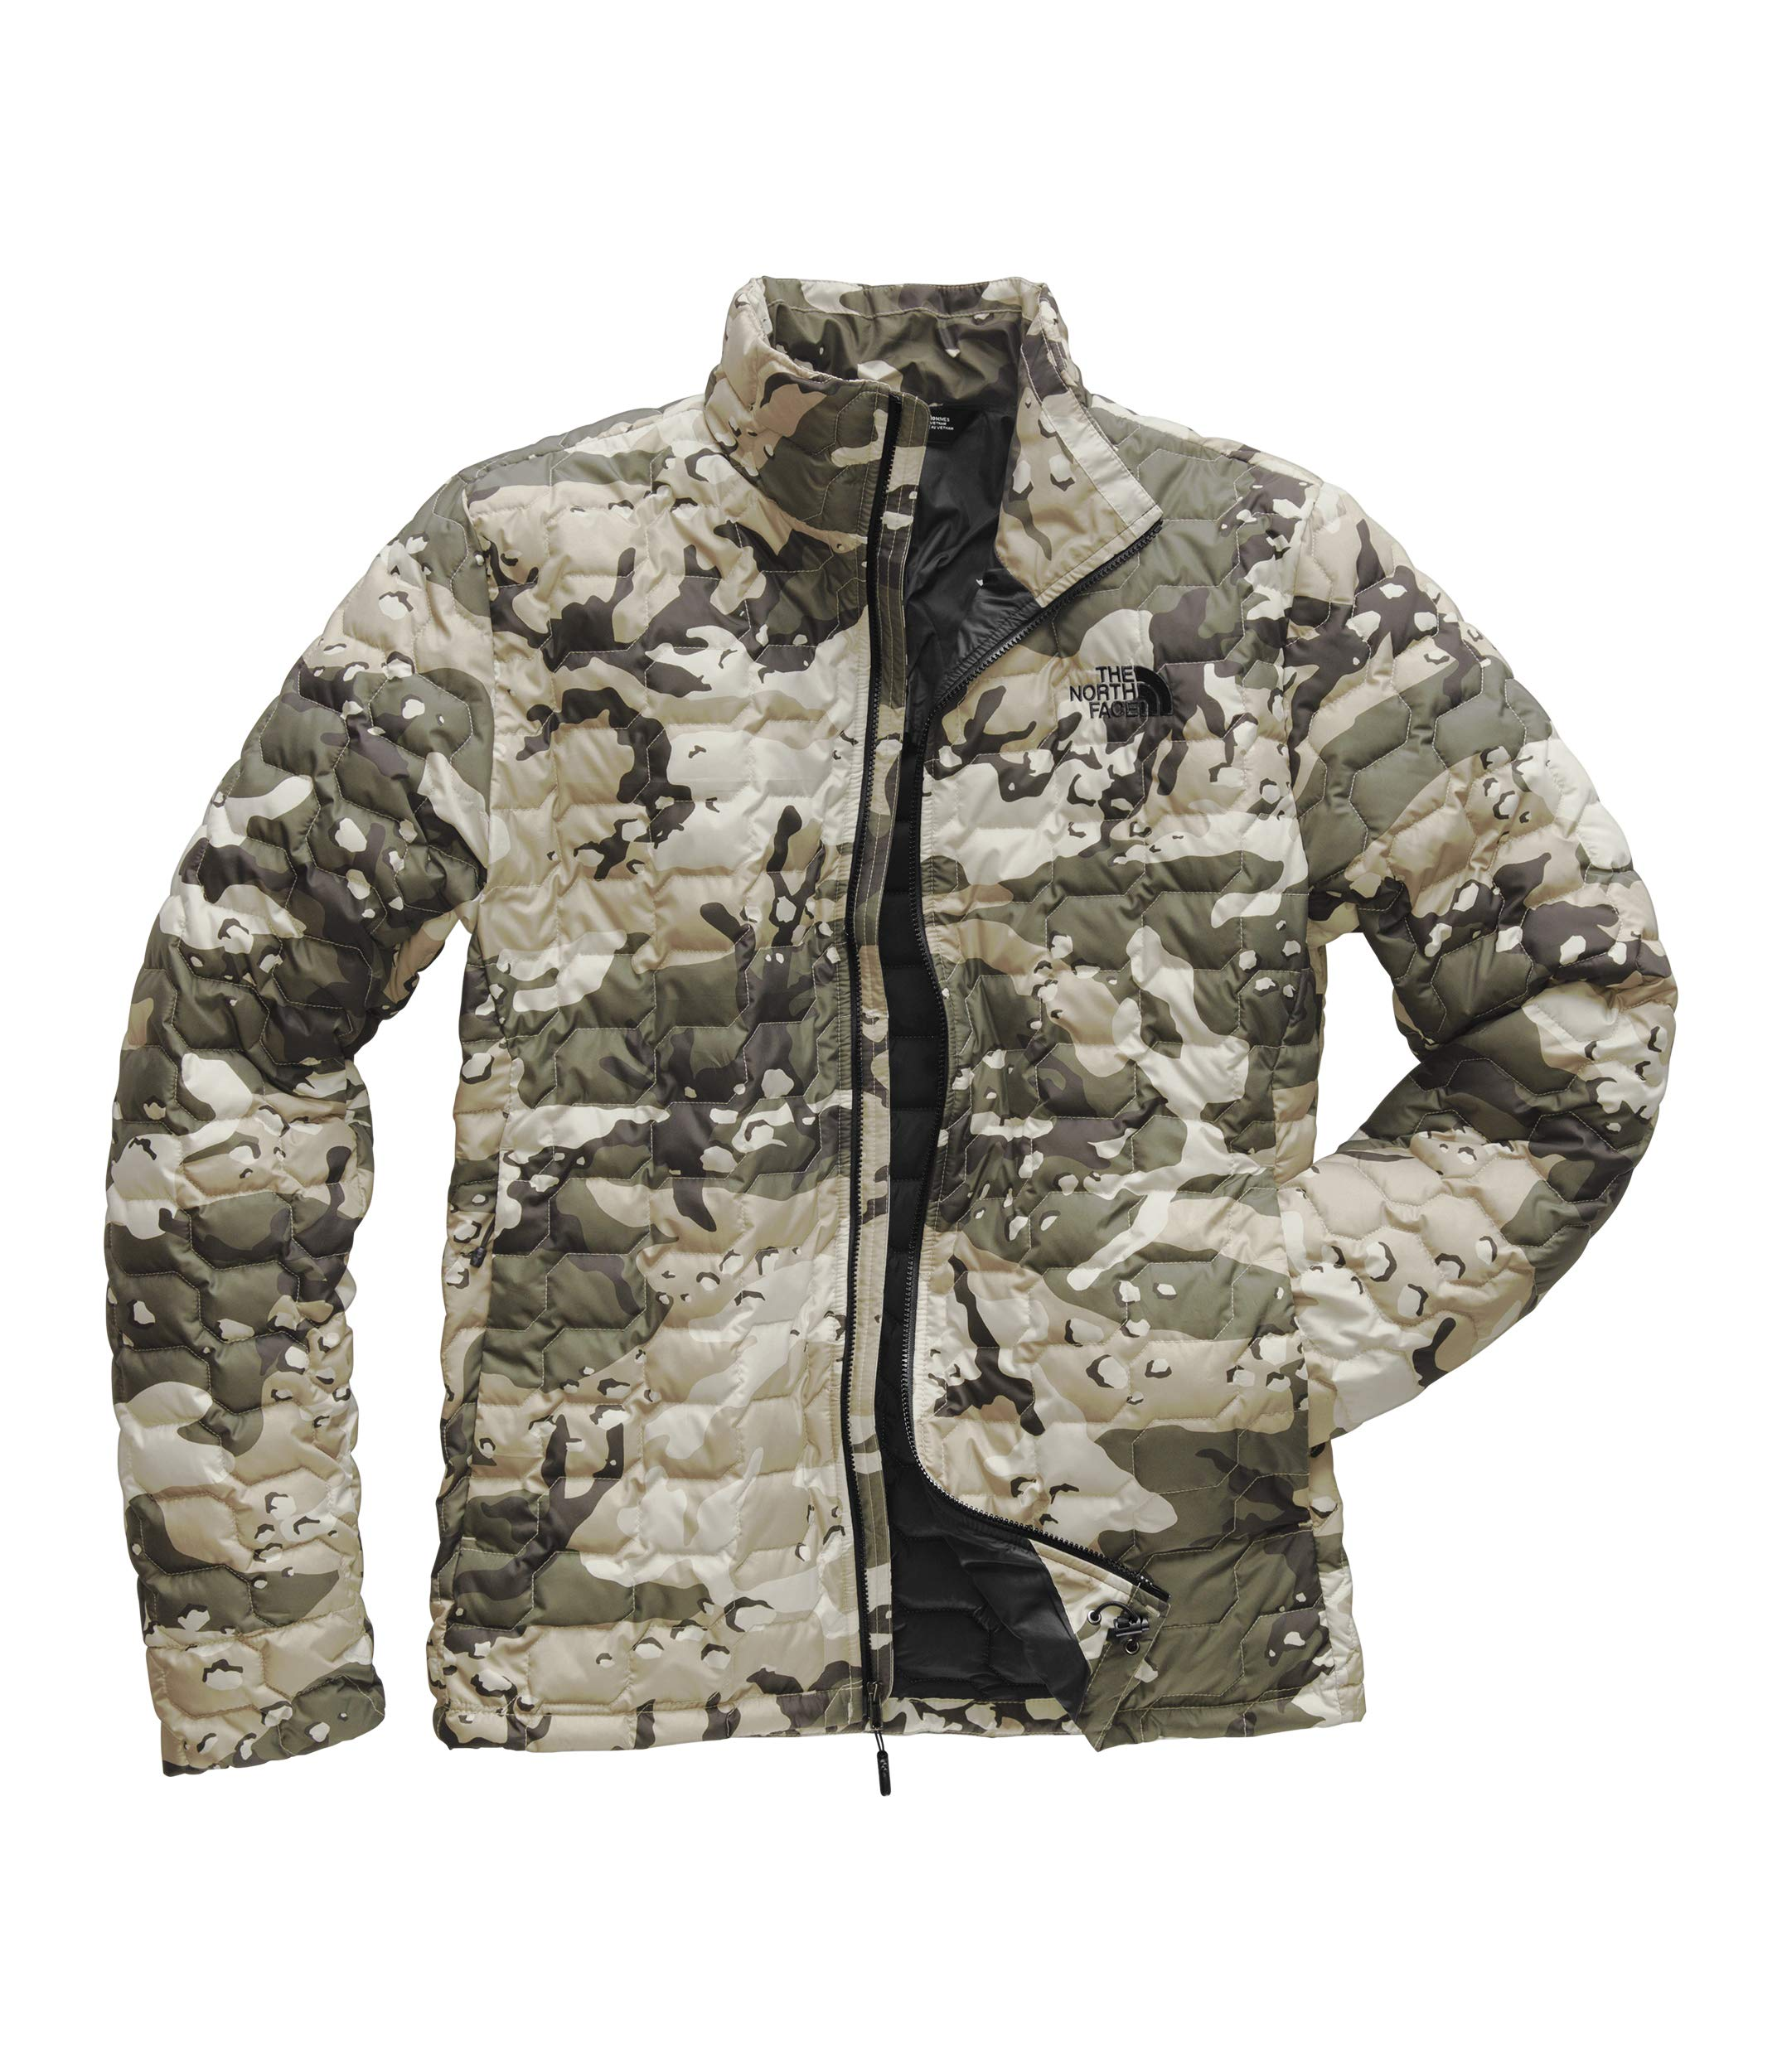 The North Face Men's Thermoball Jacket Peyote Beige Woodchip Camp Print Small